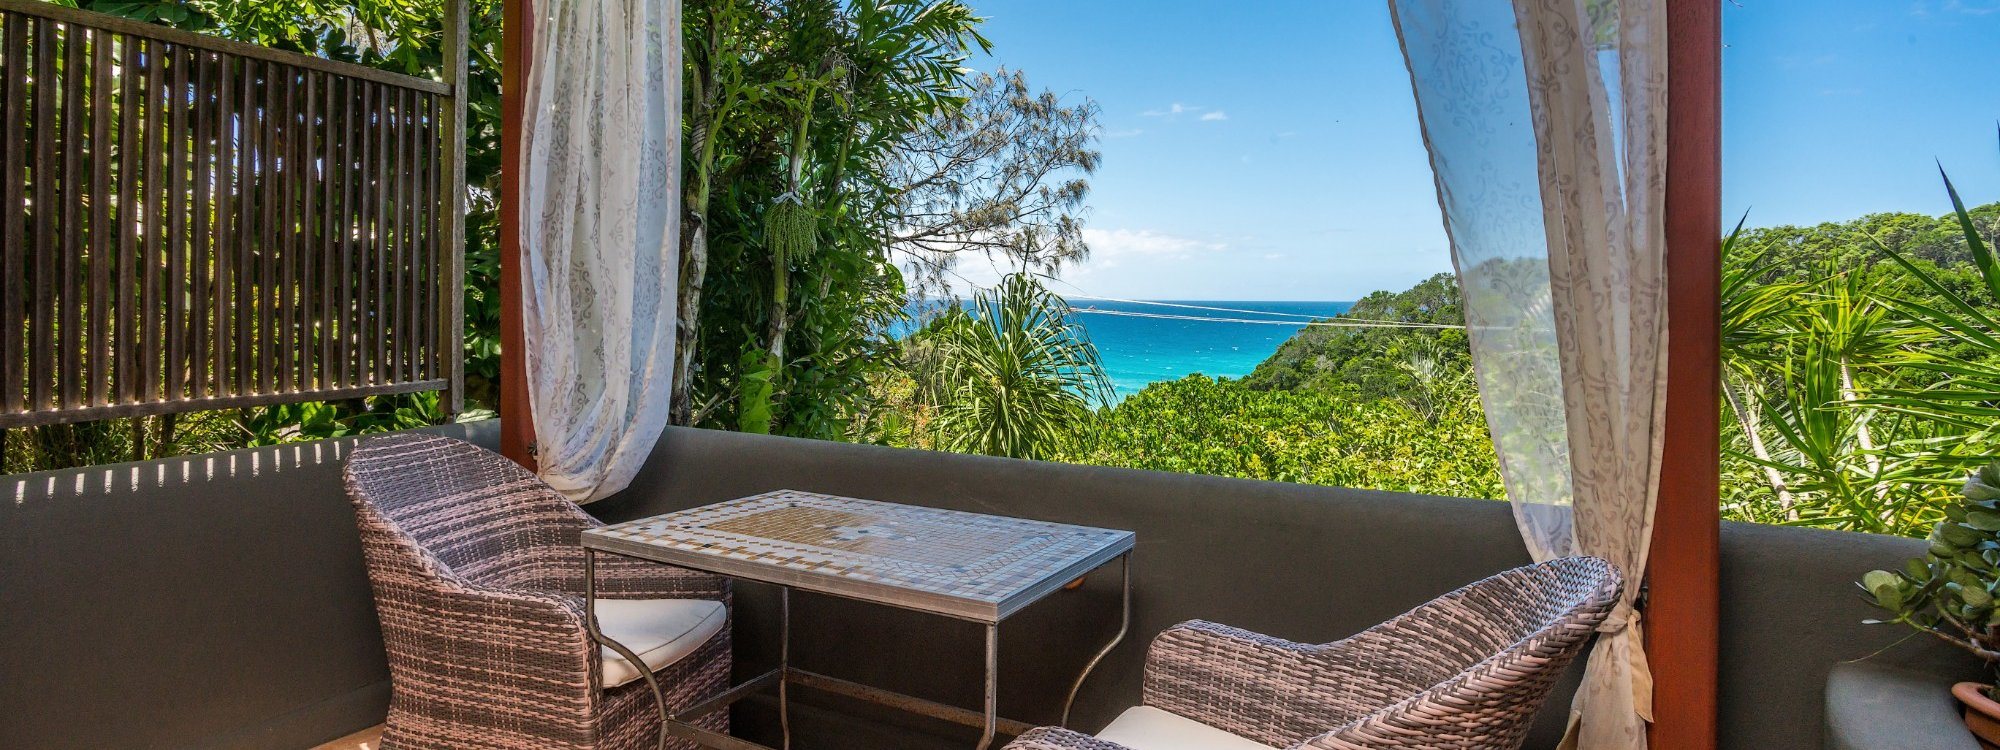 Wategos Retreats - Wategos Beach - Byron Bay - Studio balcony and ocean views